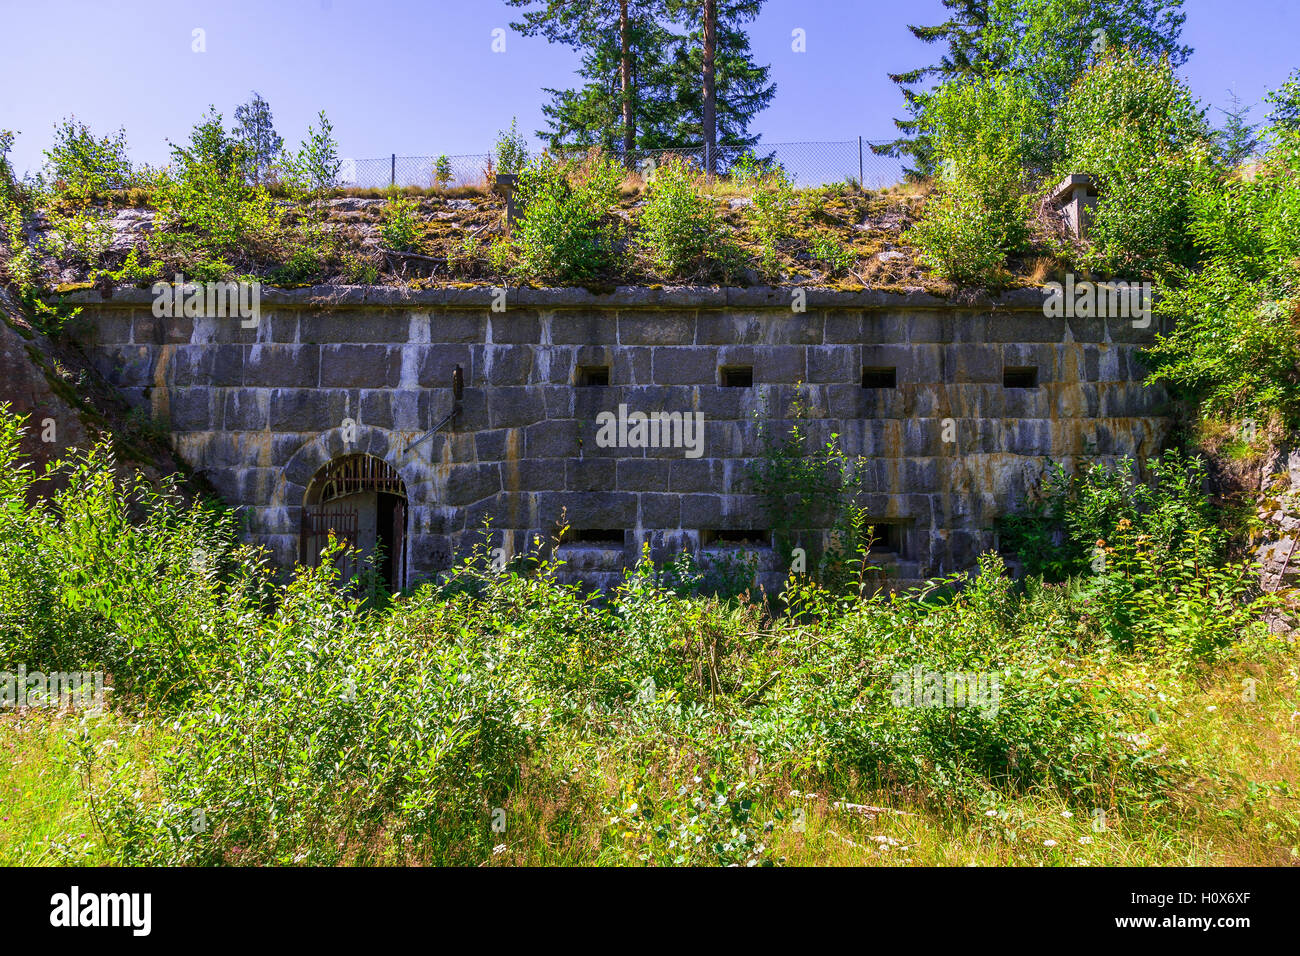 Fortified wall of an old fortress - Stock Image